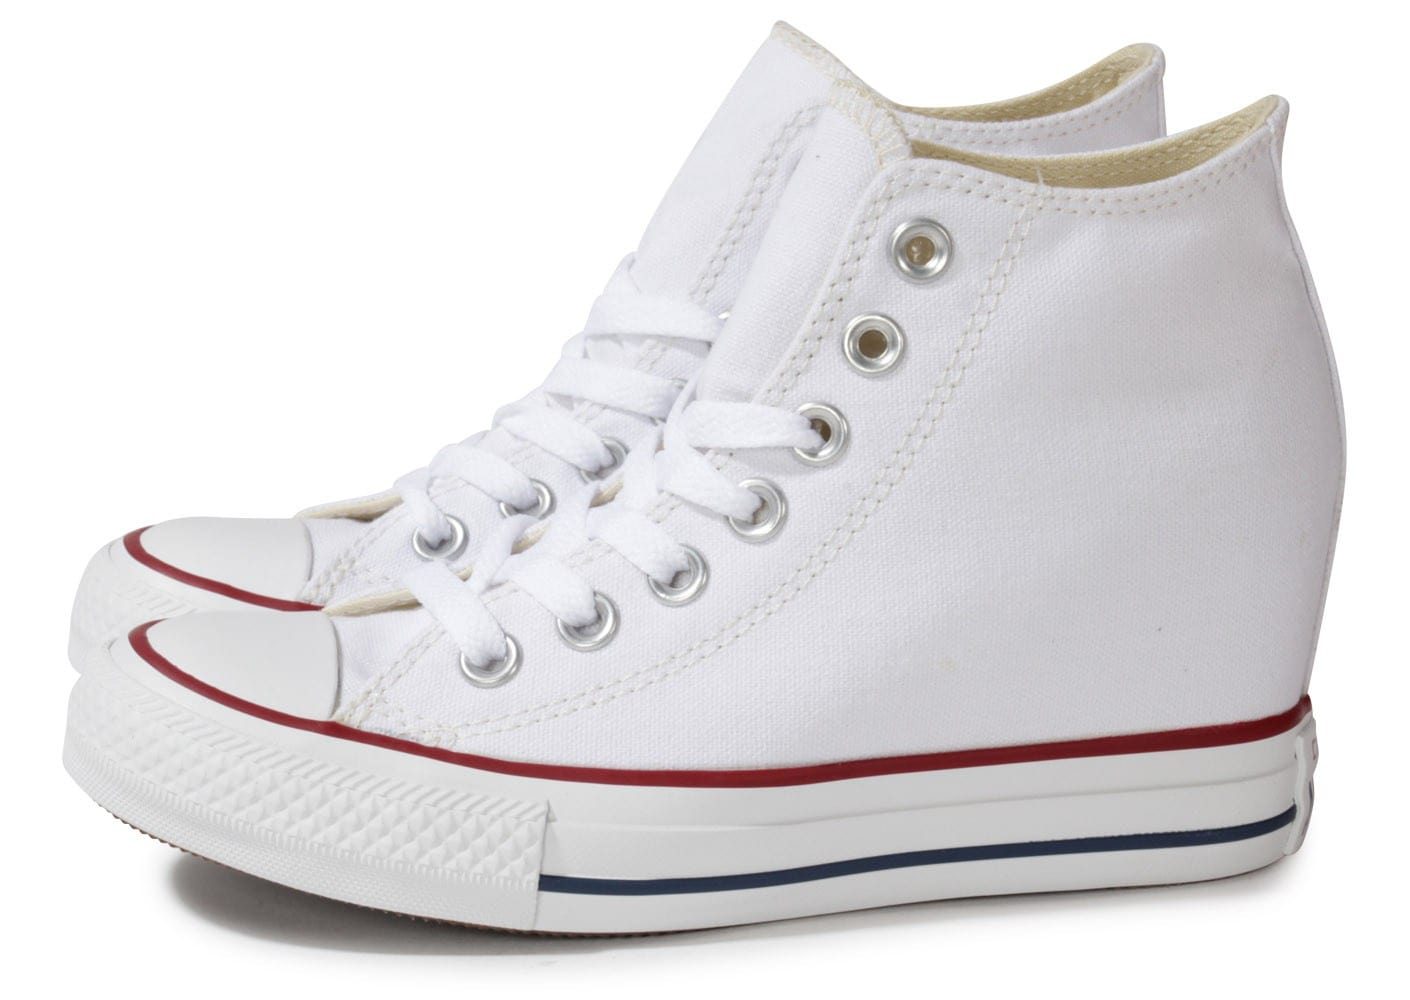 Converse All Star Blanche Femme